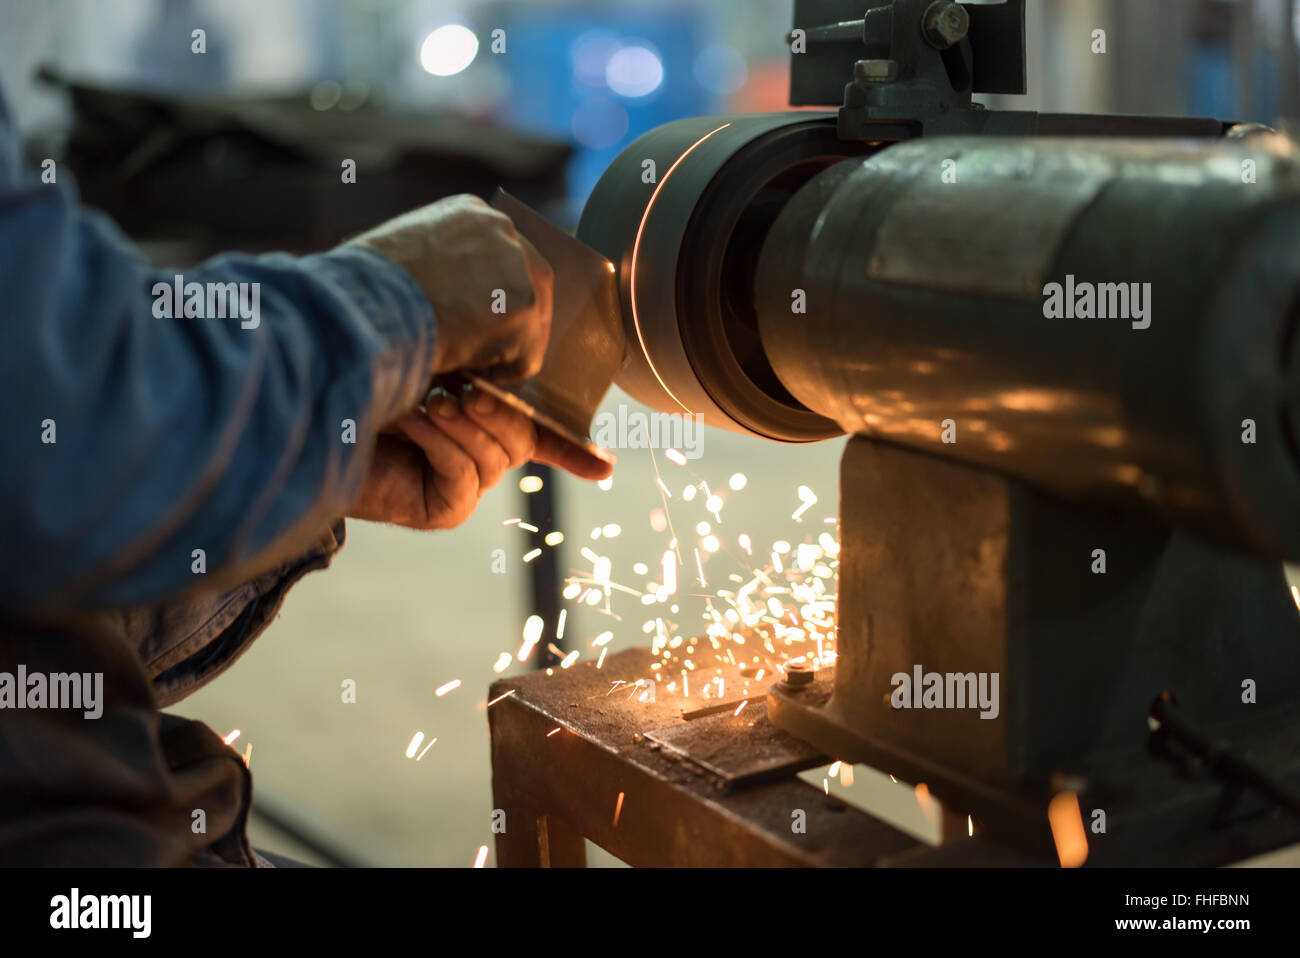 close-up of a worker's hands not wearing gloves, shaping a piece of metal on a bench grinder, with sparks emerging - Stock Image